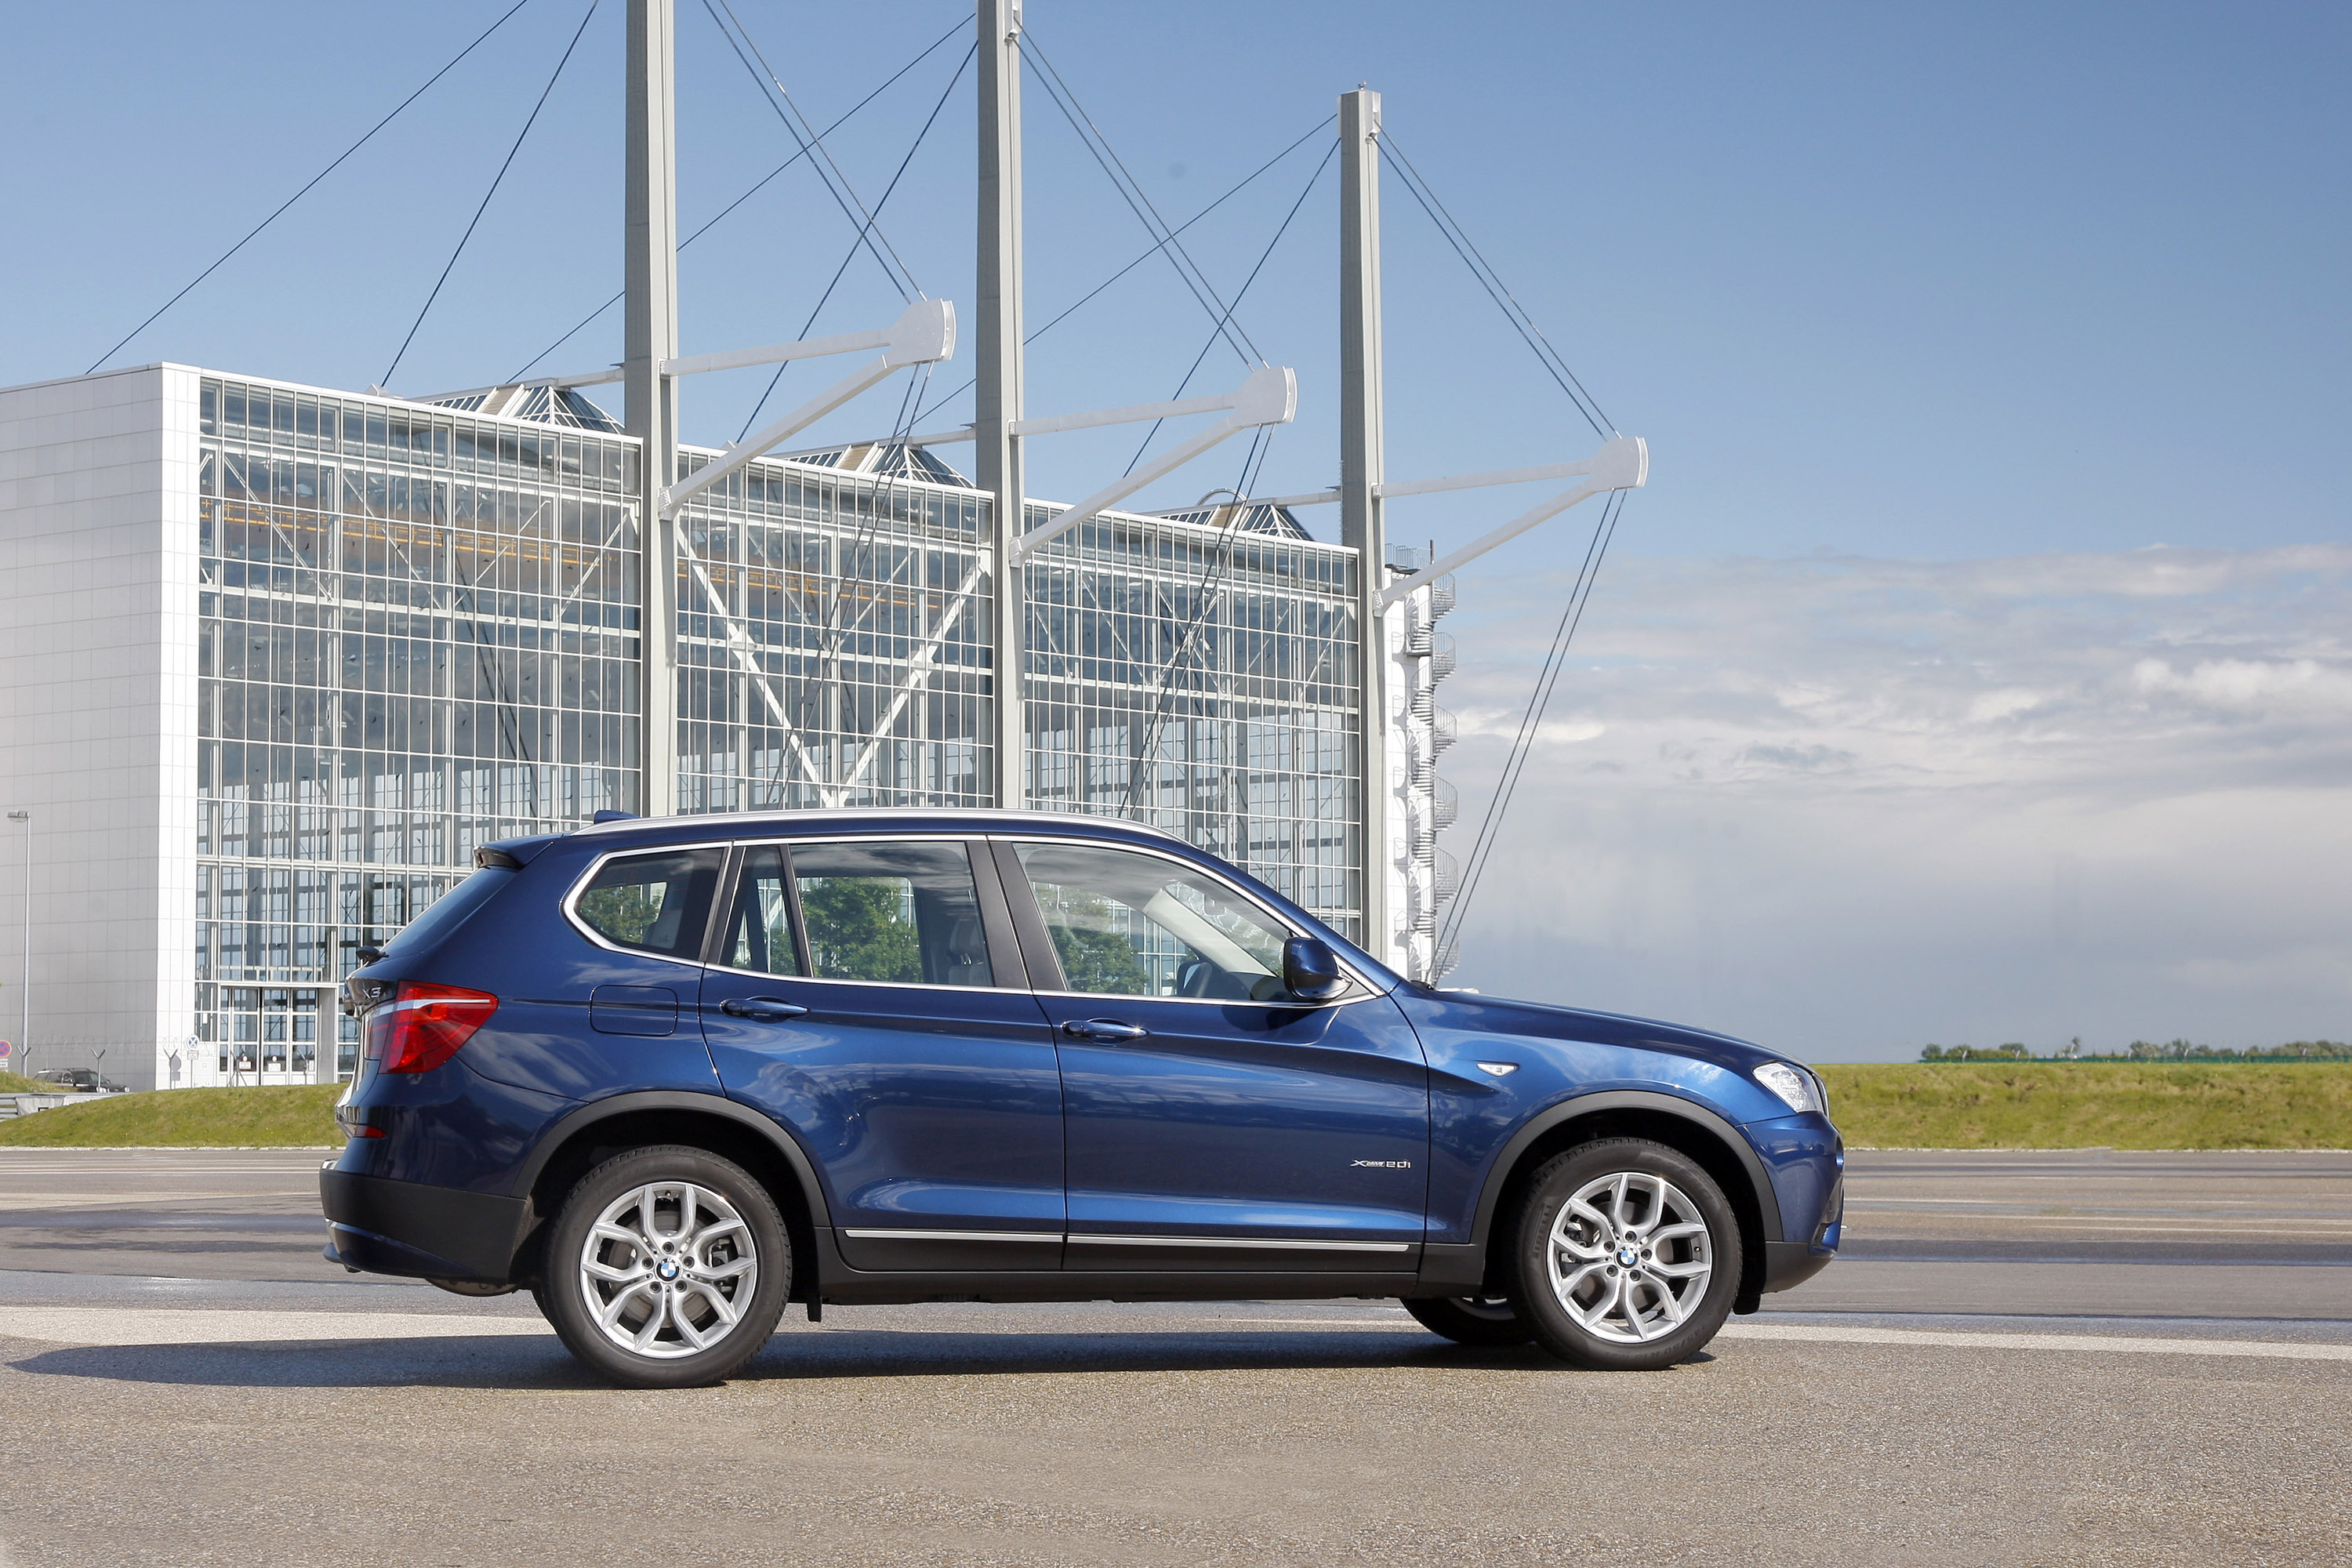 2012 BMW X3 xDrive20i and xDrive35d 2 BMW X3 xDrive20i and the BMW X3 xDrive35d  More Updated and  Efficient